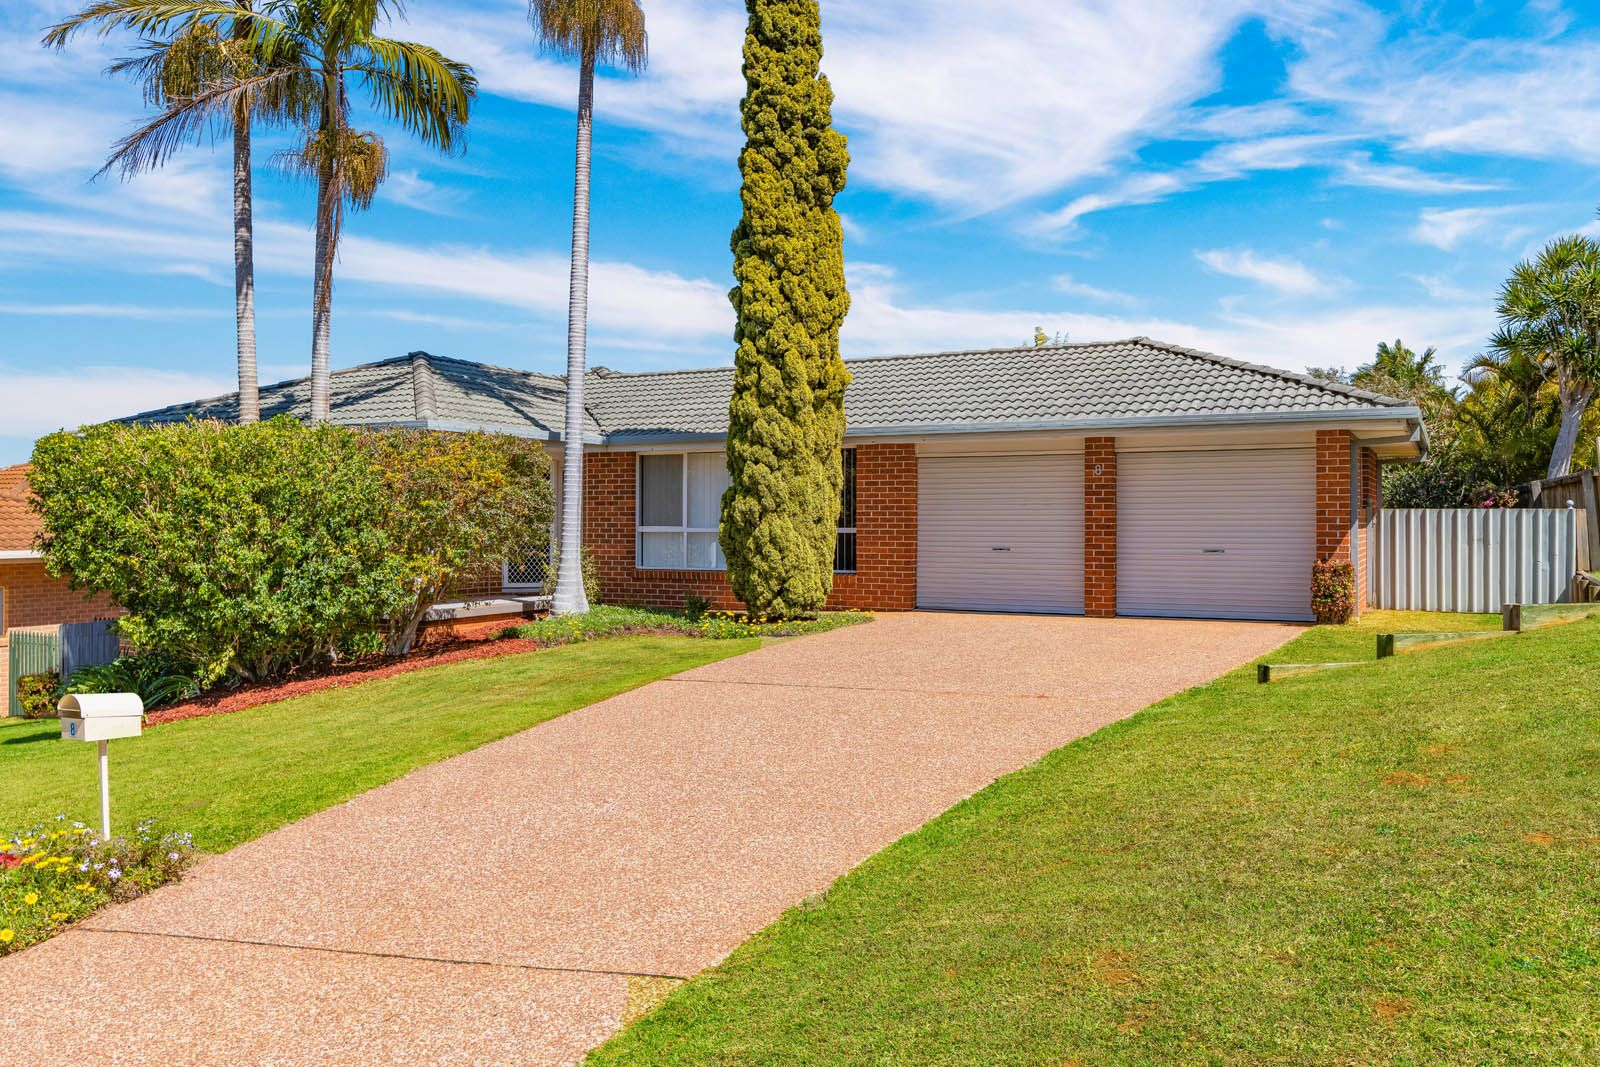 8 Crestwood Drive, Port Macquarie NSW 2444, Image 0